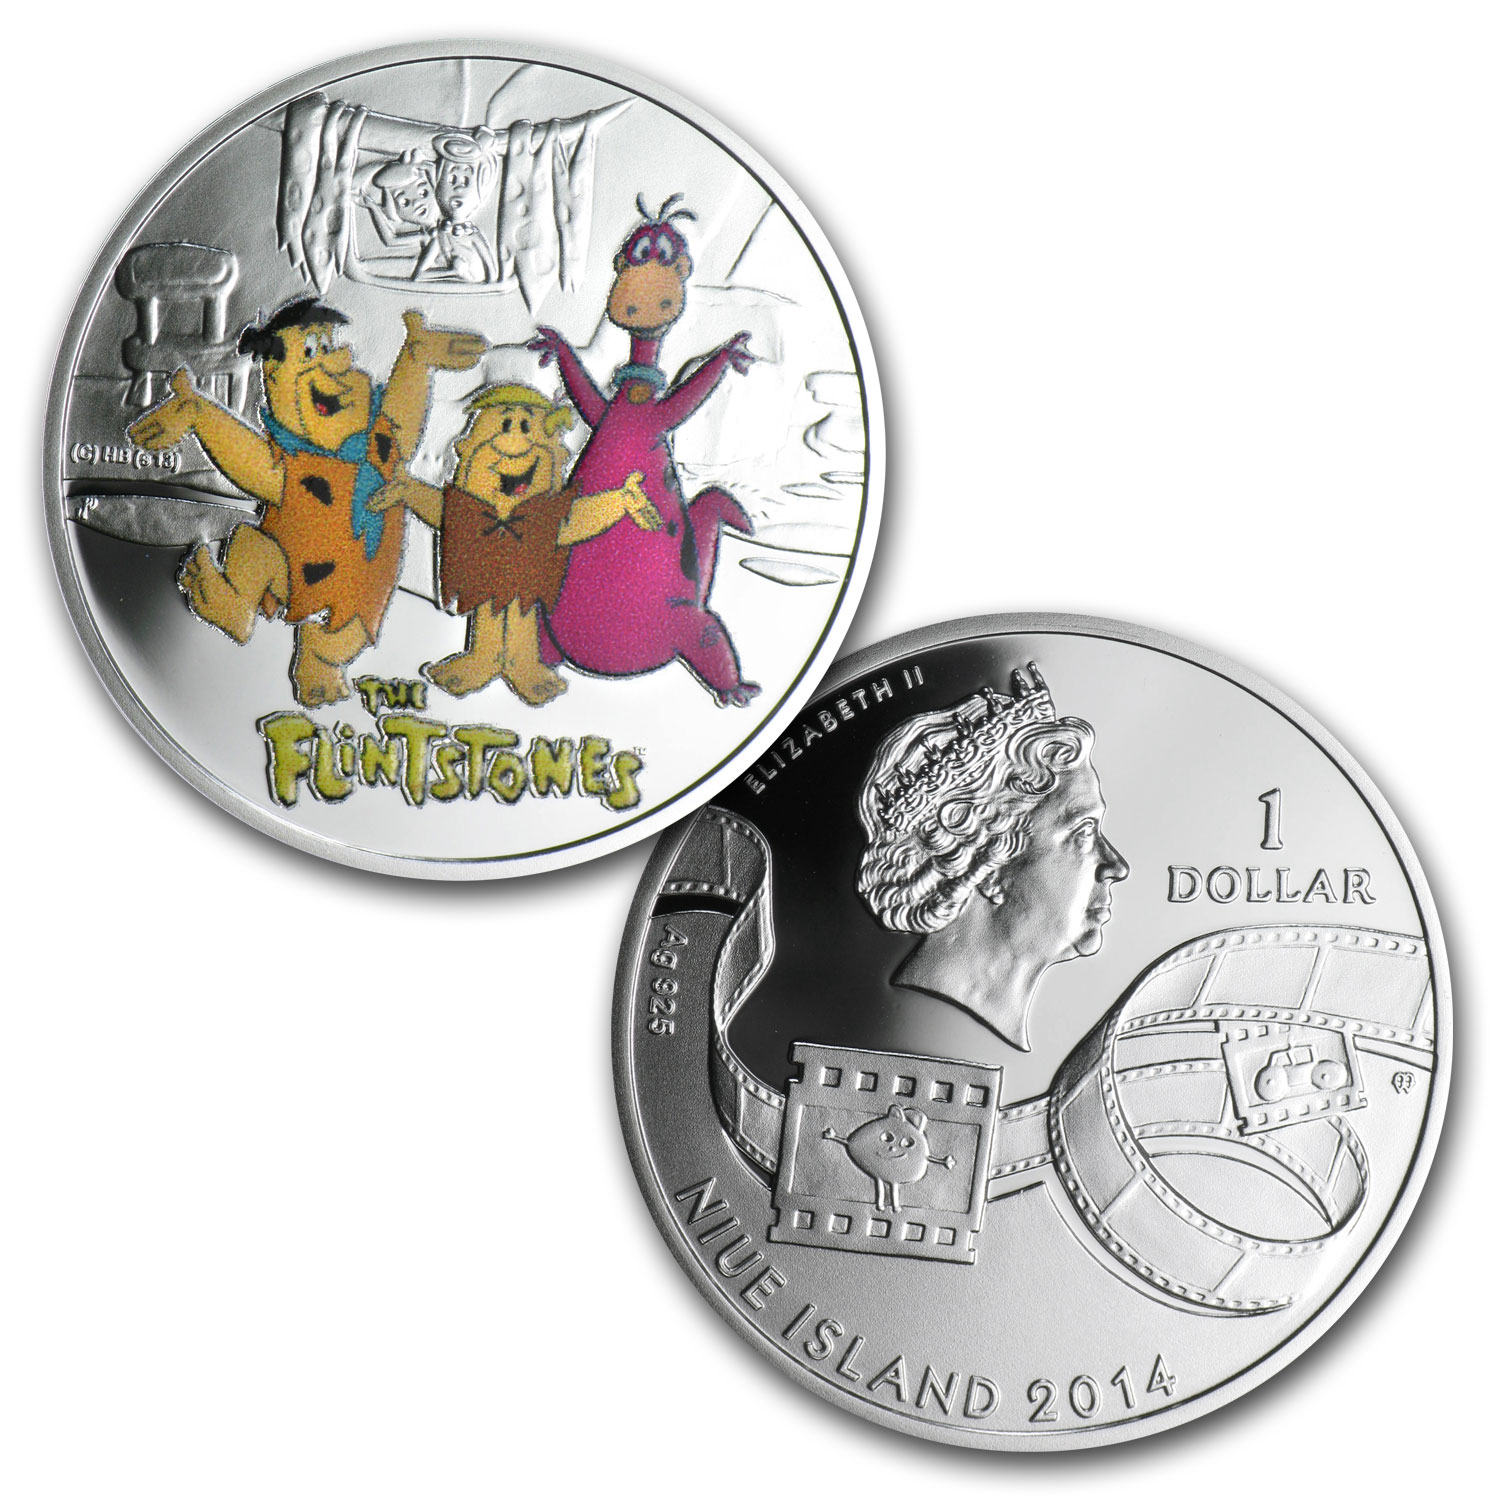 Niue 2014 Proof Silver $1 Cartoon Characters - Flintstones